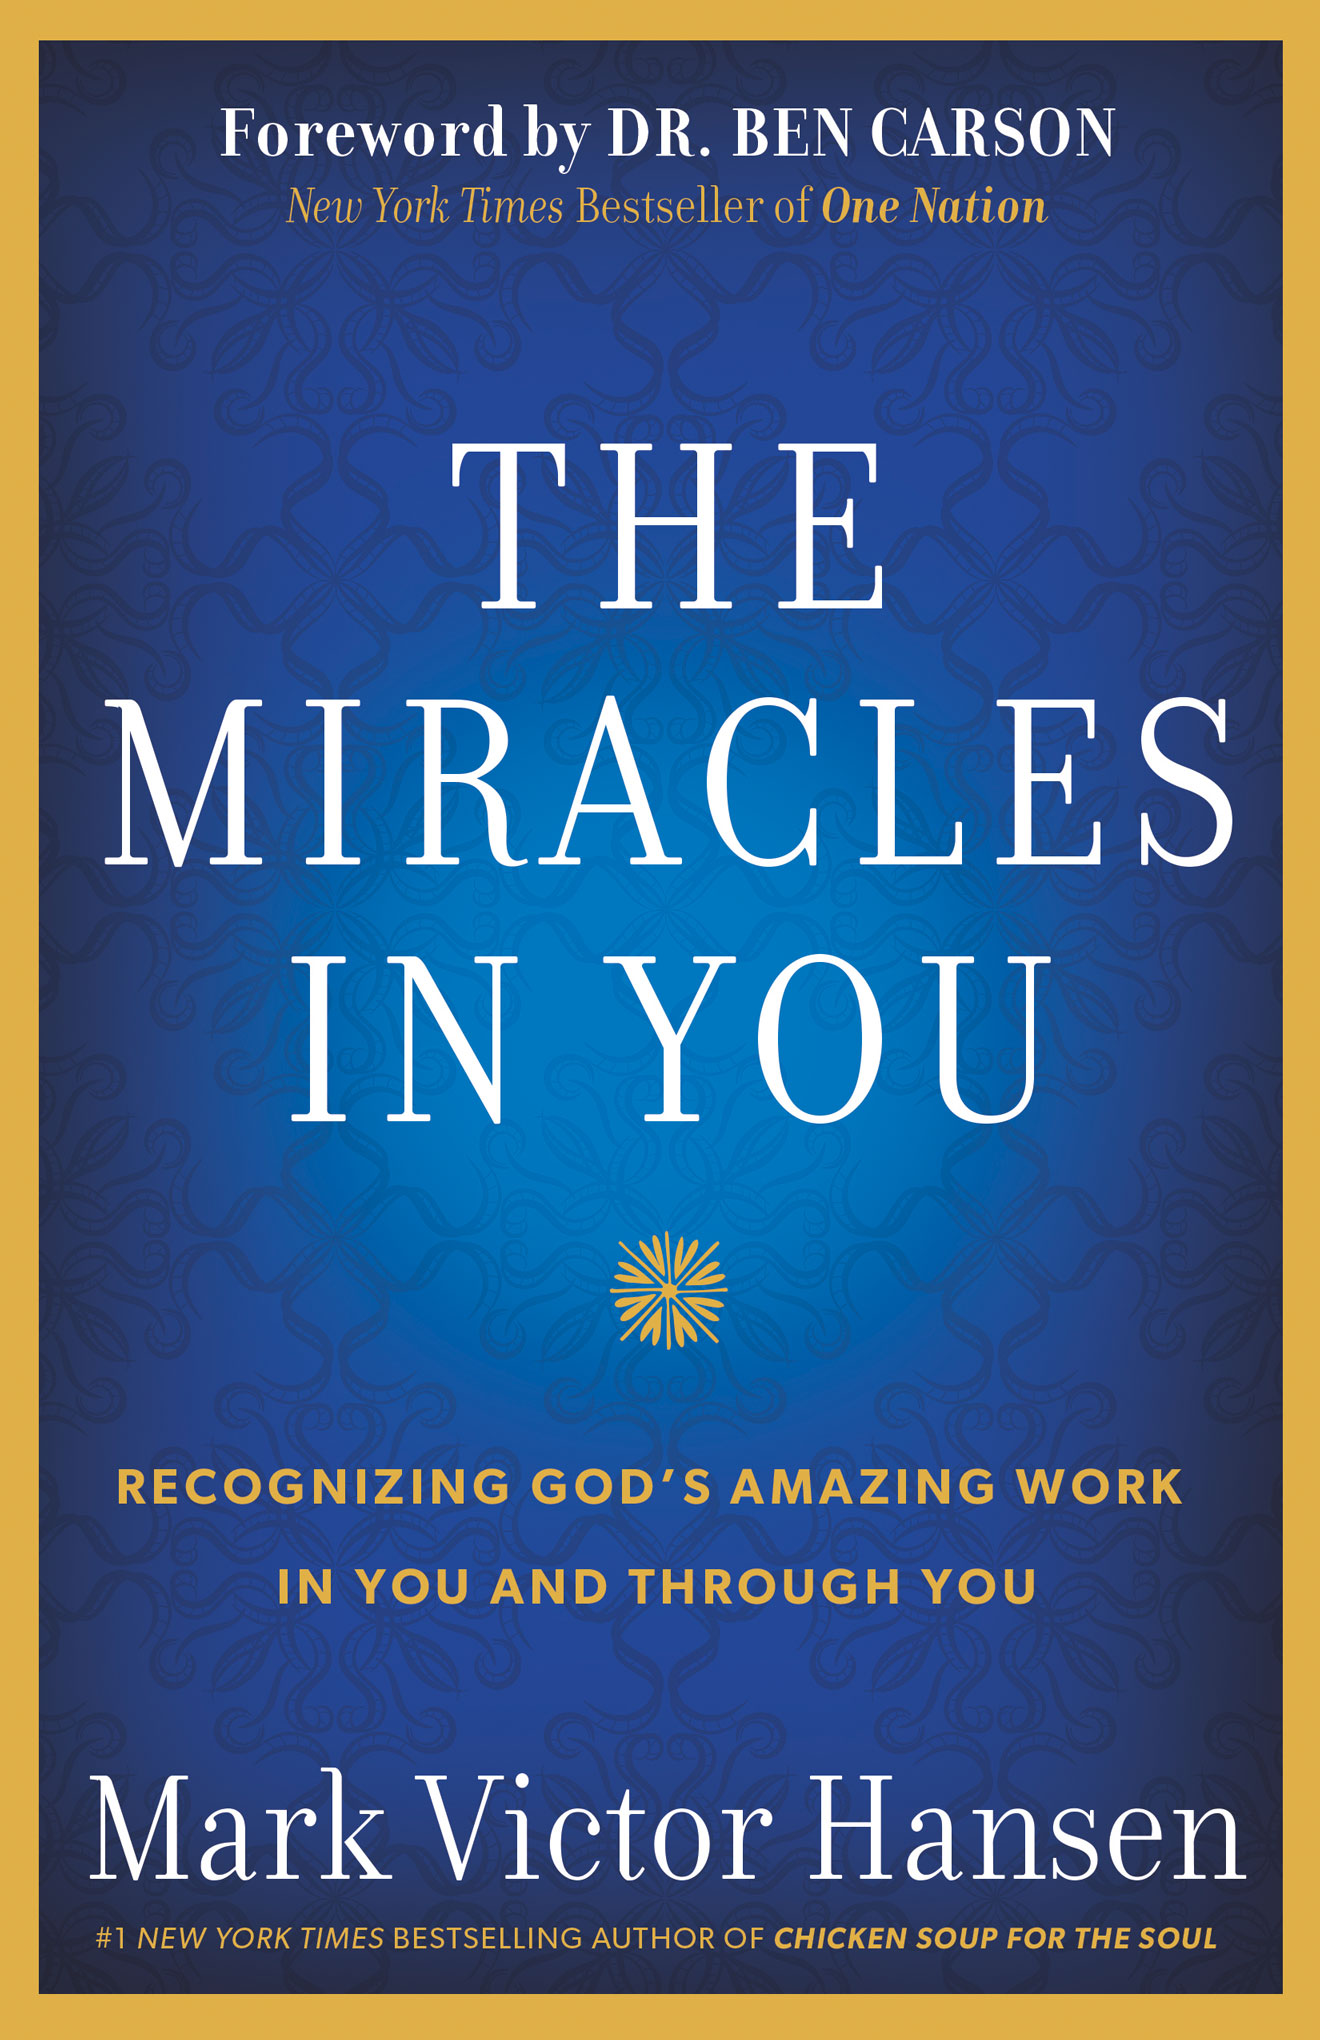 The Miracles In You by Mark Victor Hansen